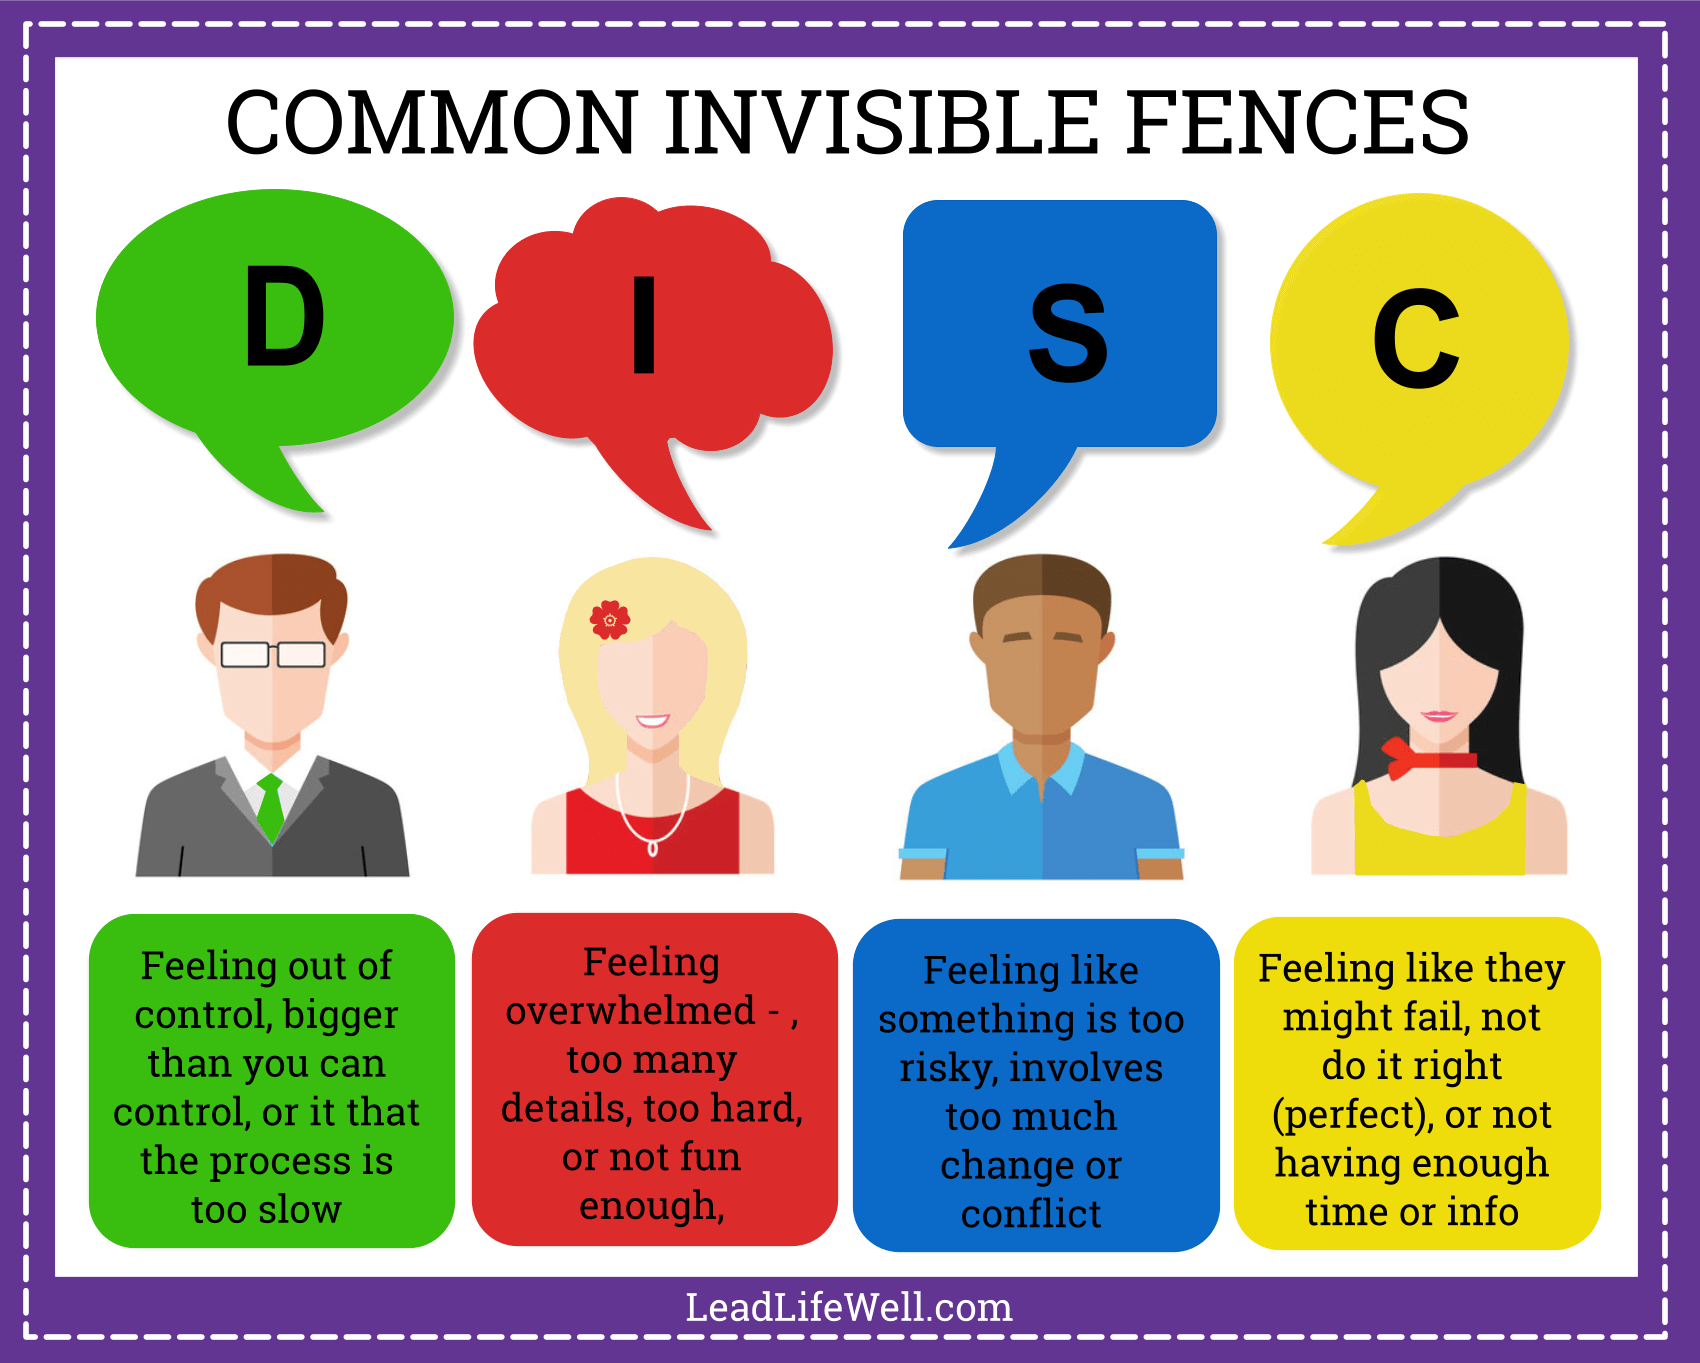 Invisible fence - DISC